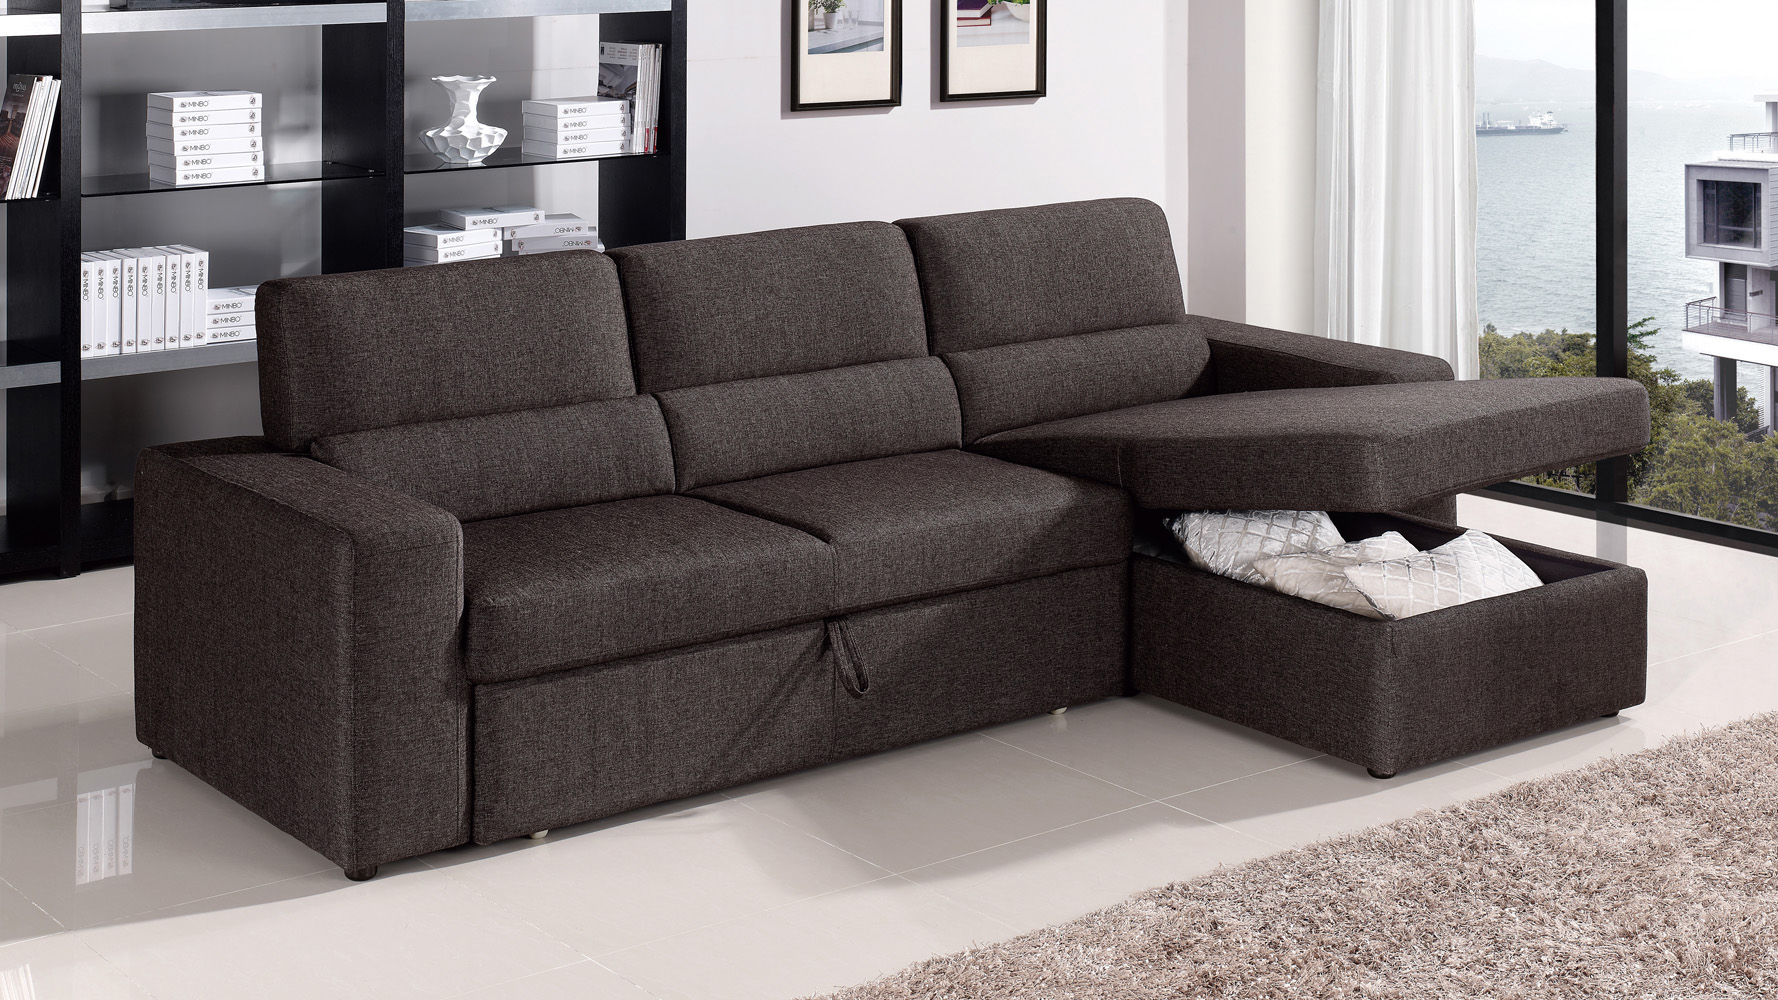 BlackBrown Clubber Sleeper Sectional Sofa Zuri Furniture - Convertible sofa bed sectional